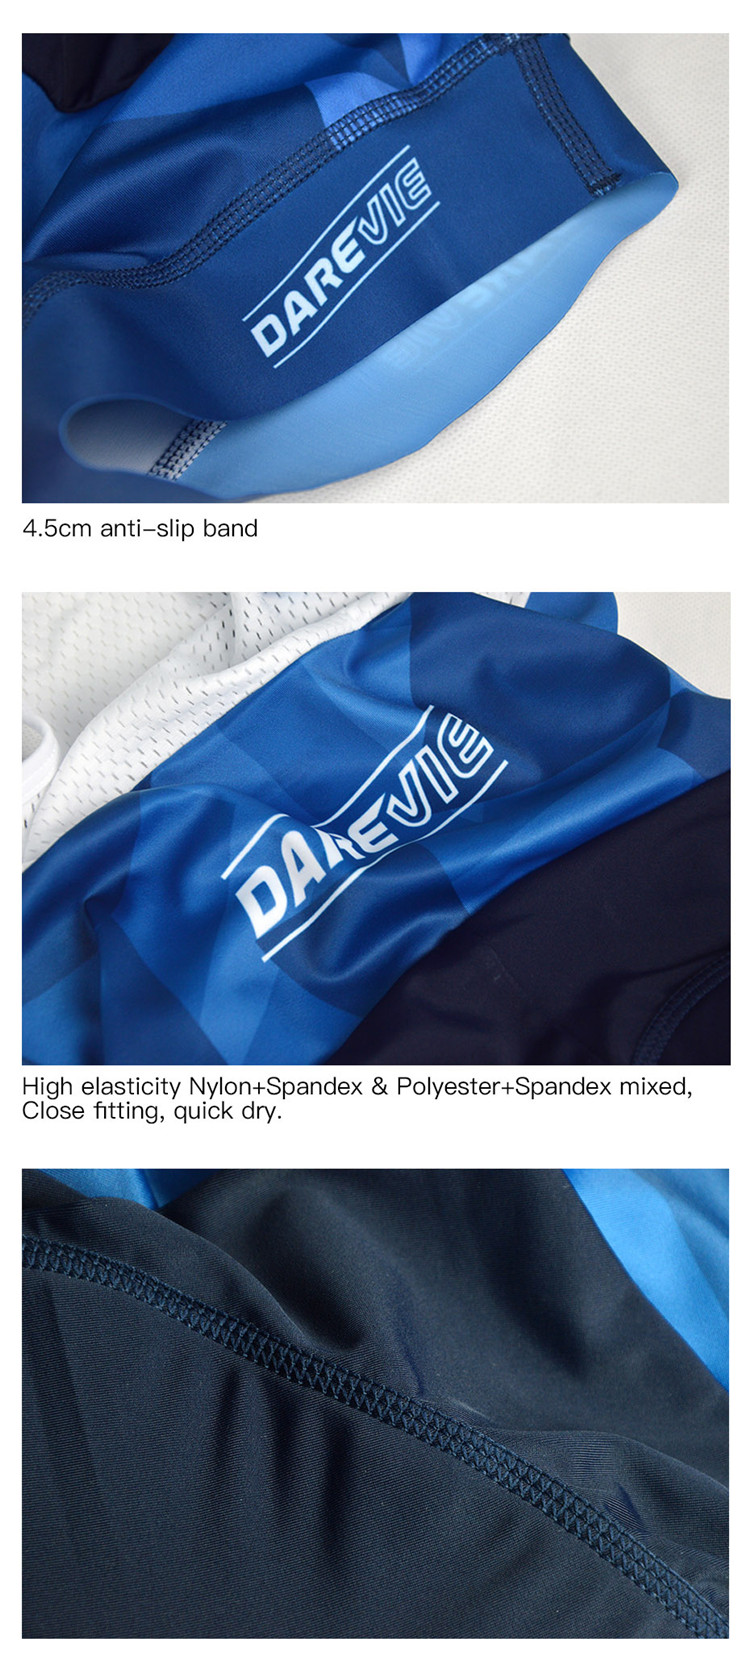 Customized Item Quick Dry Full Cycling Kit For Bike Riders/Digital Print Bike Wear Cycle Kits Uniforms